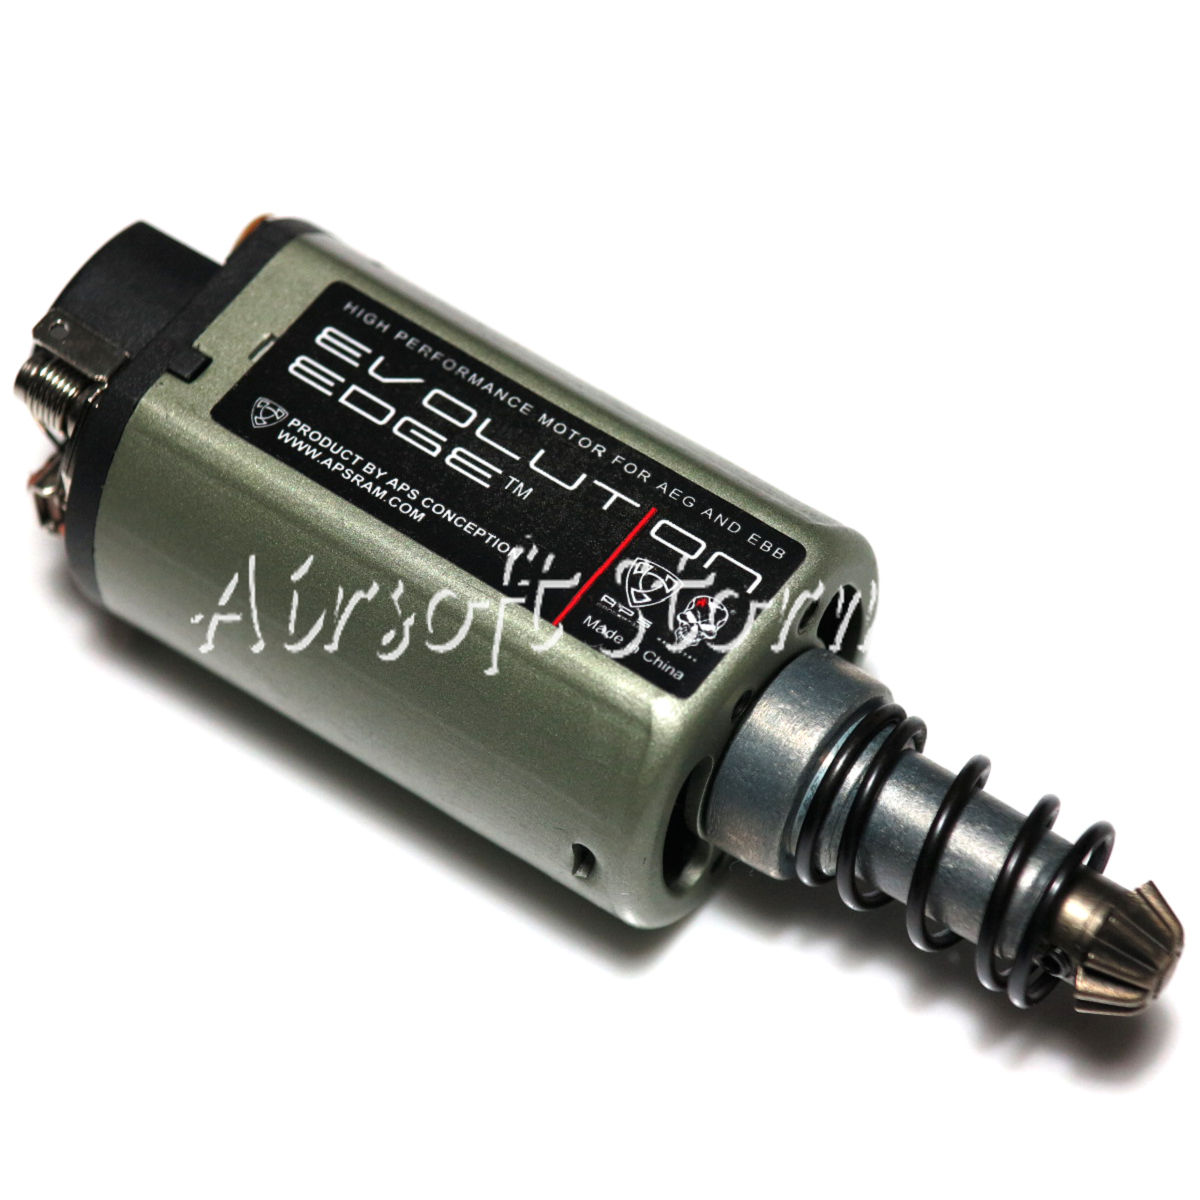 Airsoft Tactical Gear APS AER033 Evolution Edge Motor for APS ASR Series